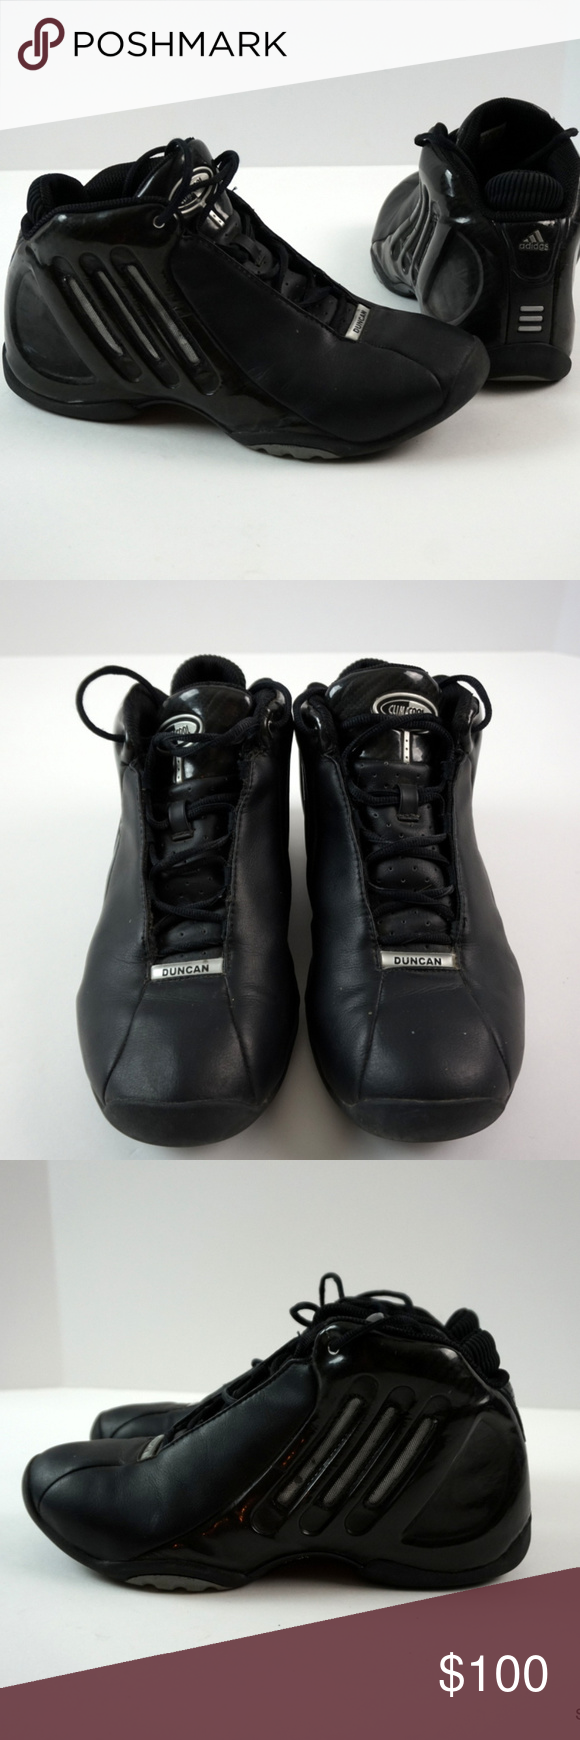 07493bb6 Adidas Tim Duncan D Cool ClimaCool Basketball Shoe Adidas Tim Duncan D Cool Basketball  Shoes Clima Cool Spurs Black Men's Size 10 These are the Signature ...